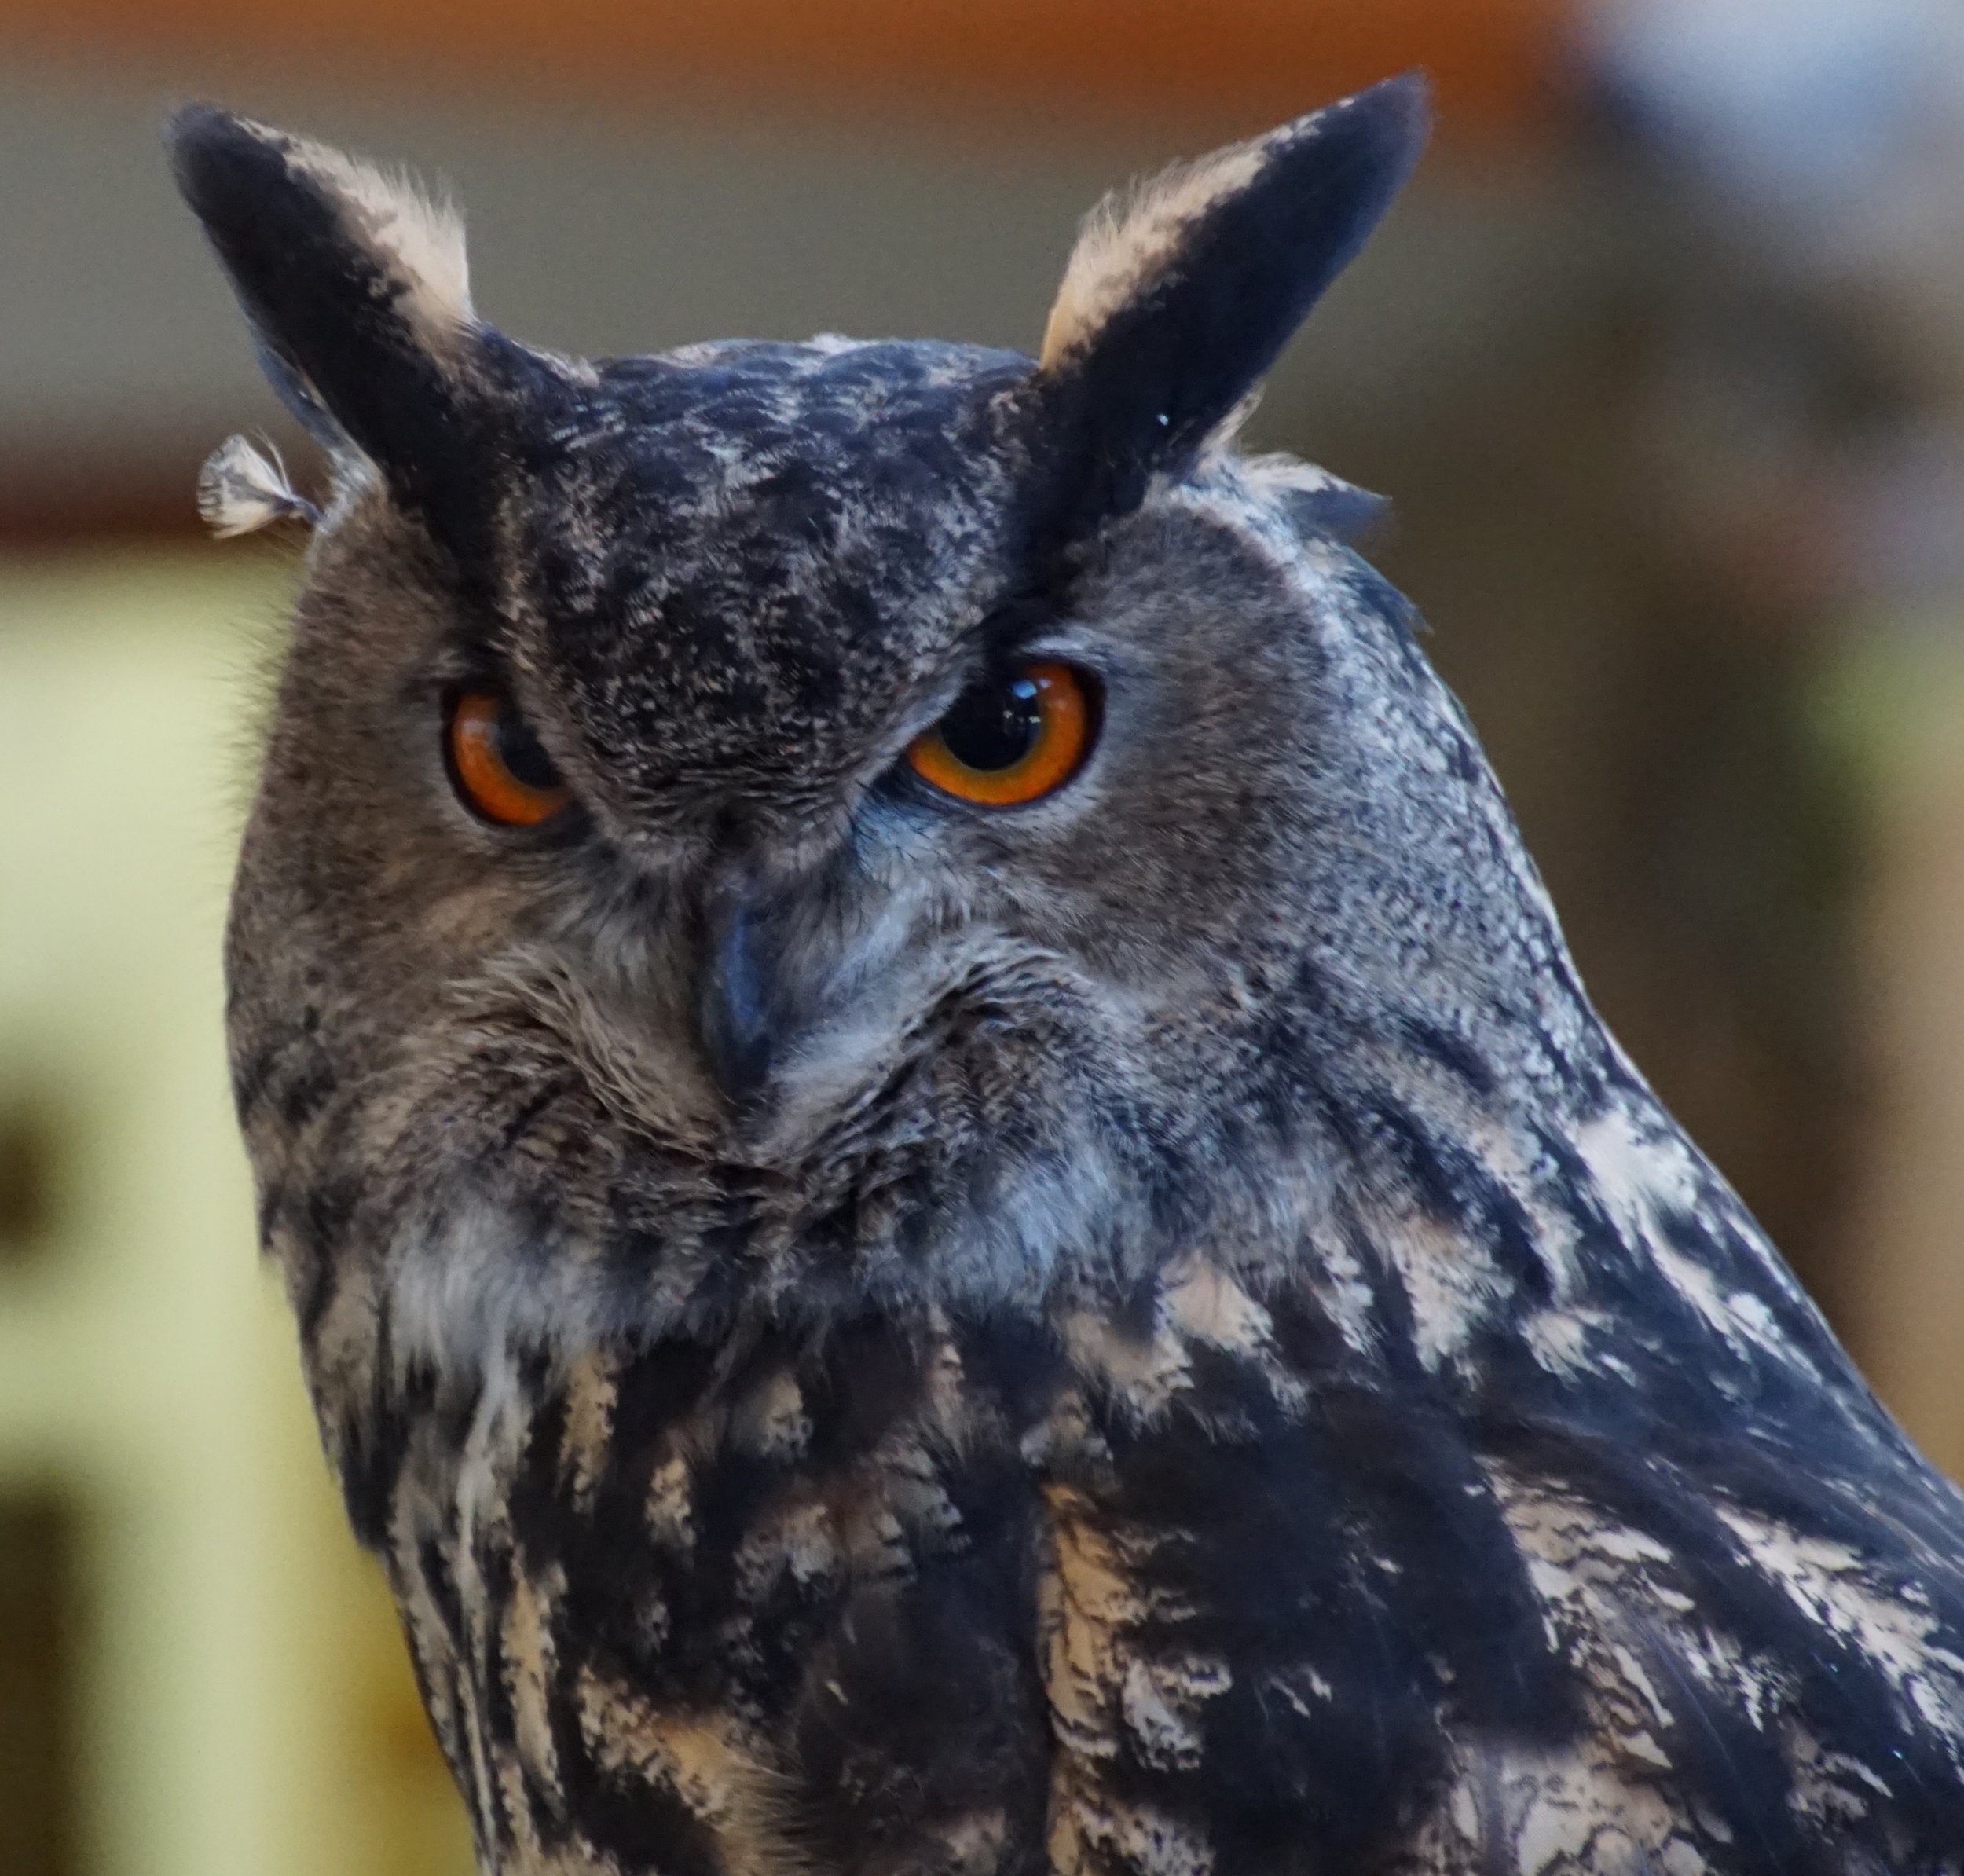 A feather out of place on this Eurasian eagle owl at the American Bald Eagle Foundation in Haines, Alaska.